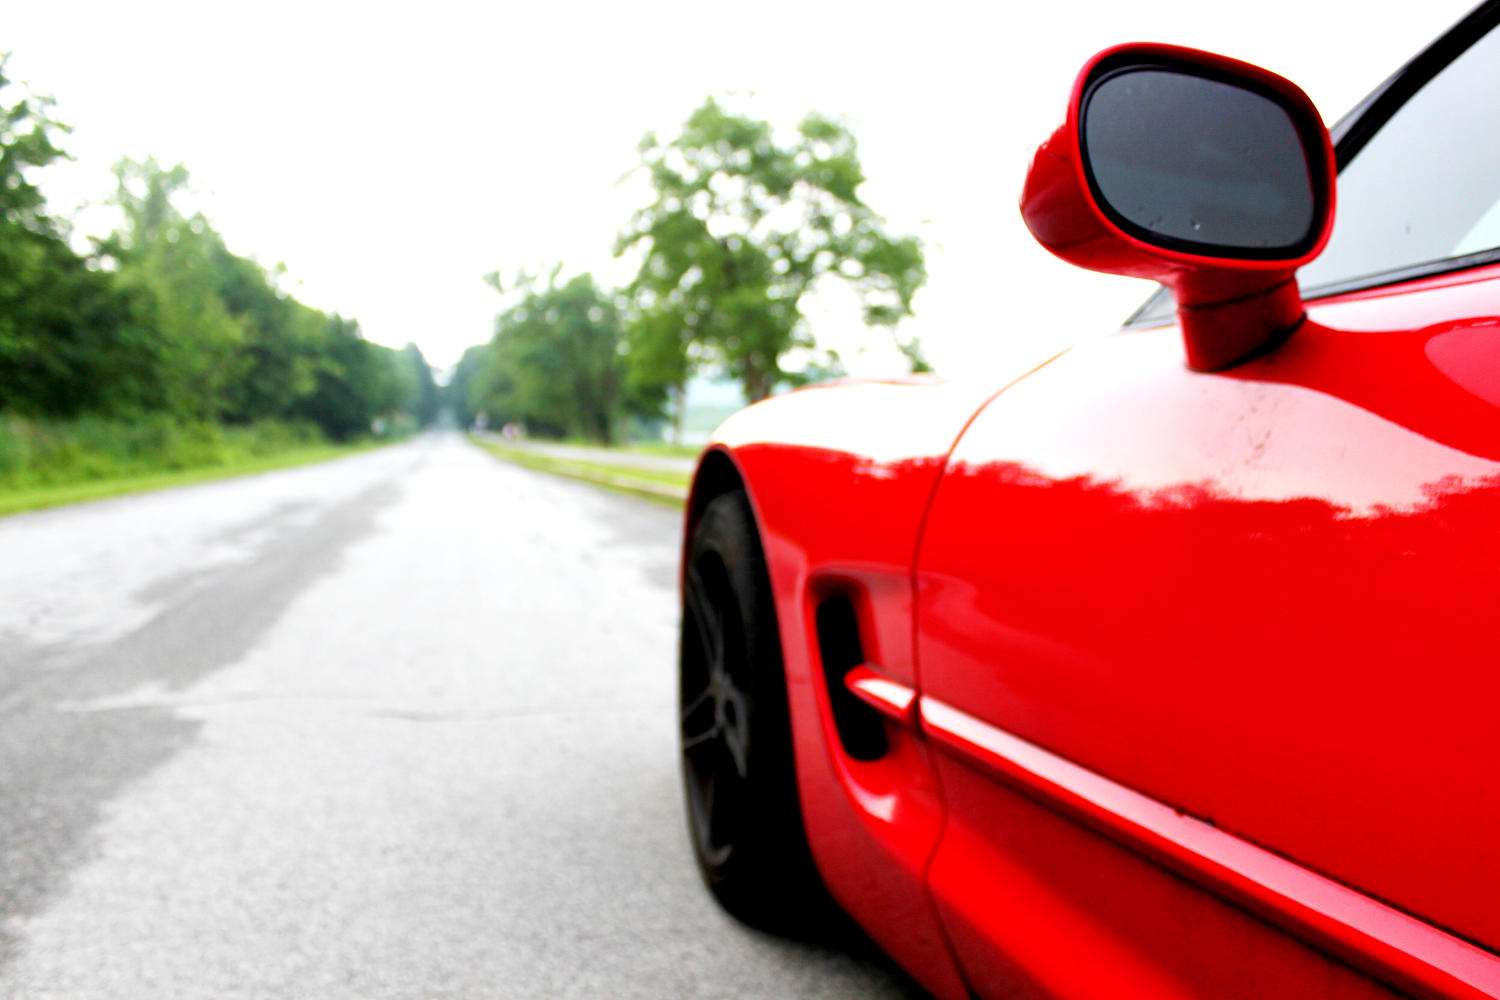 Before you dump the clutch on a mid-life crisis, check those mirrors. | image: Christian H. , Flickr CC